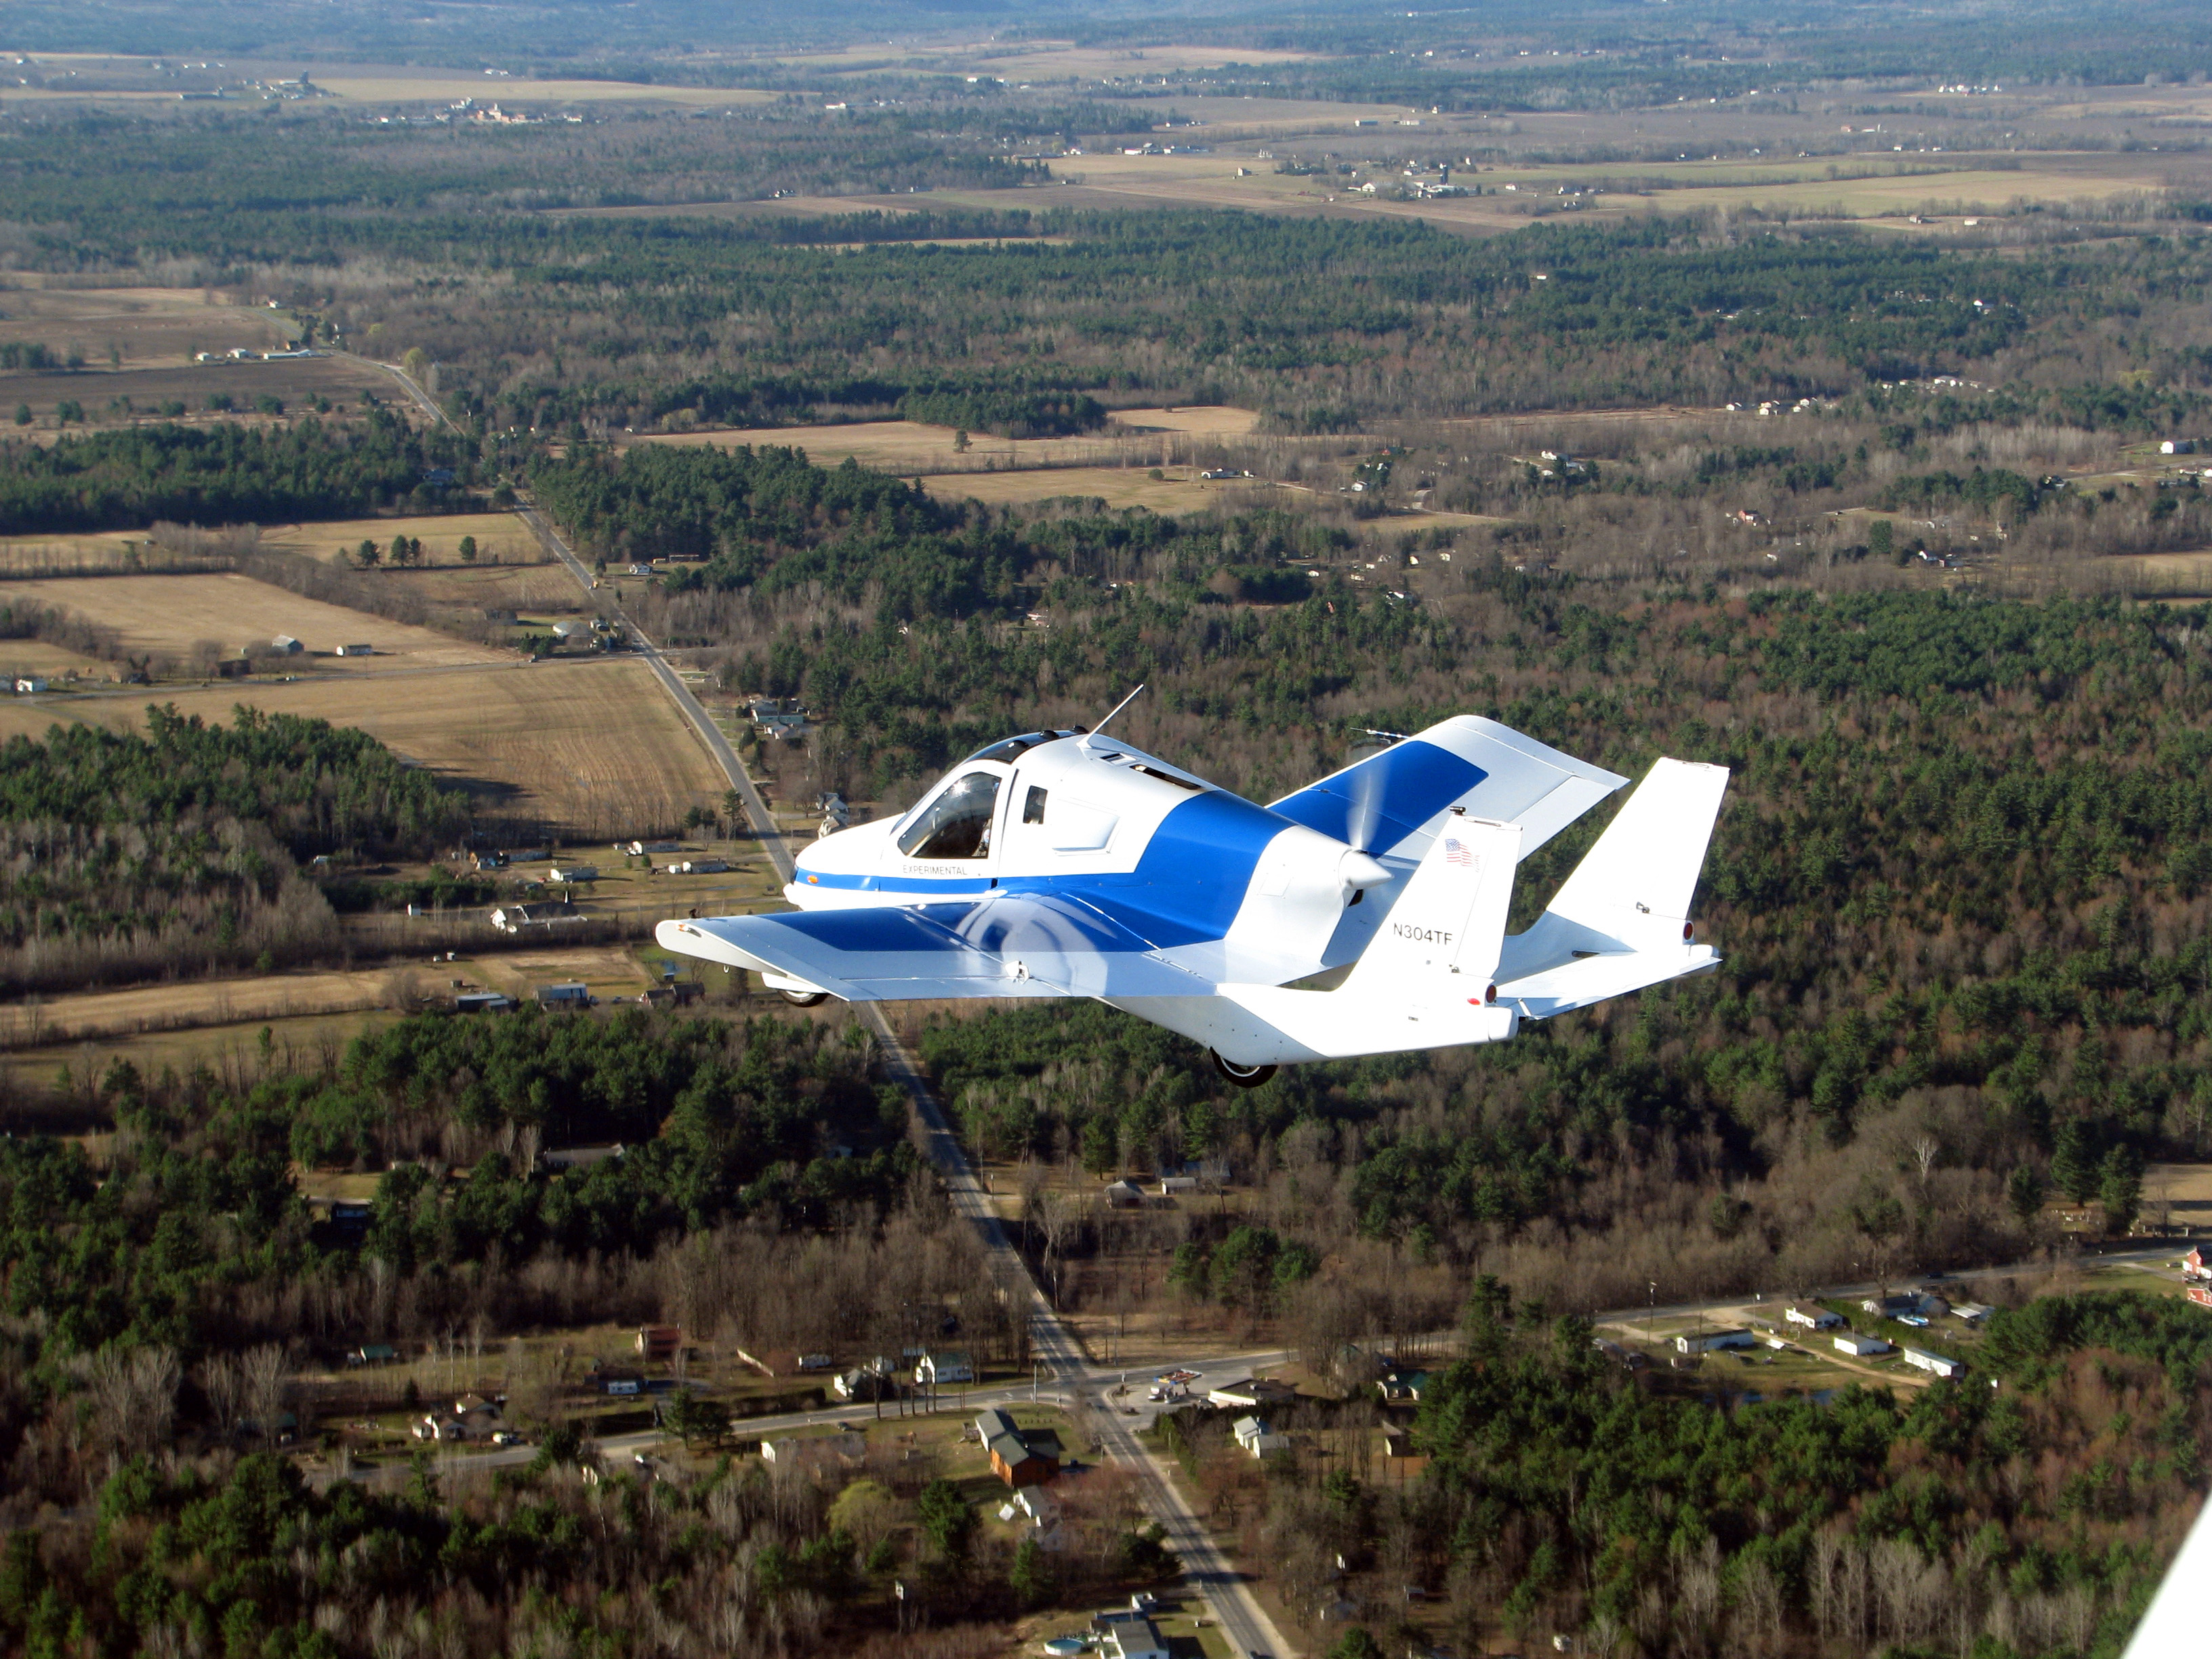 Terrafugia's prototype flying car, dubbed the Transition, during its first flight, May 23, 2012.